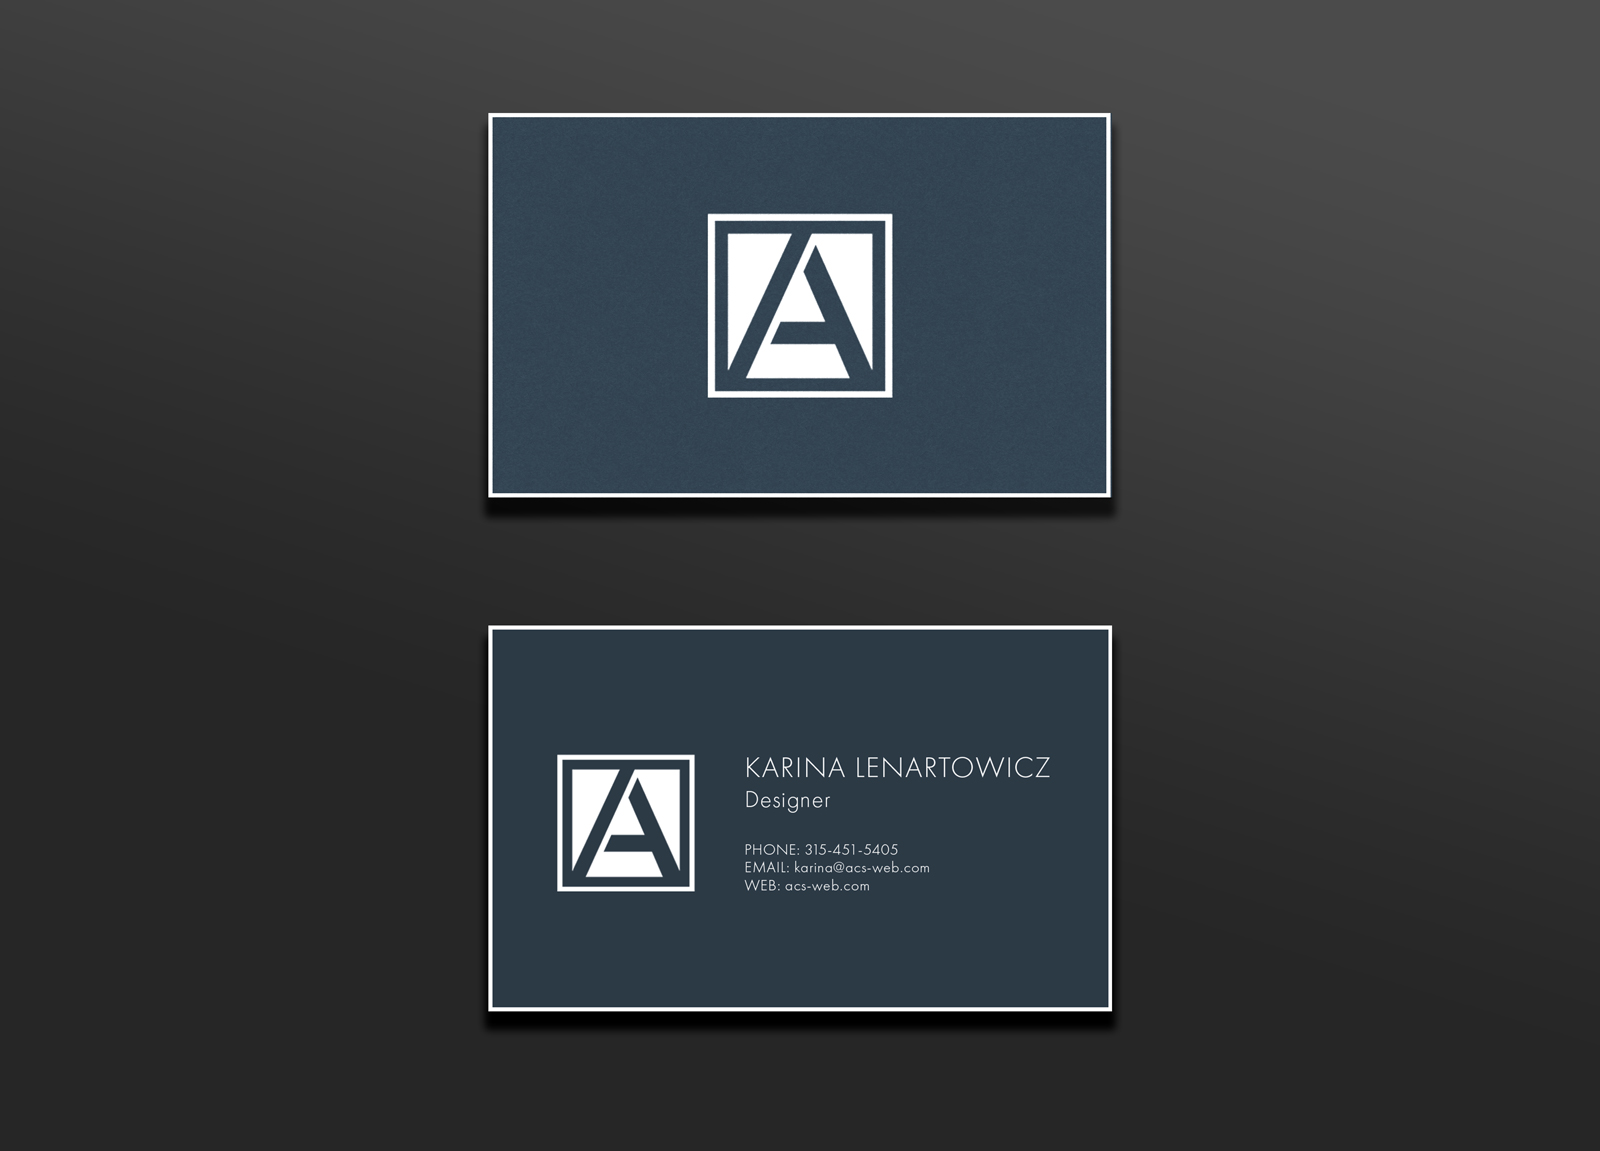 ACS Branding and Identity- Print Business Card Design